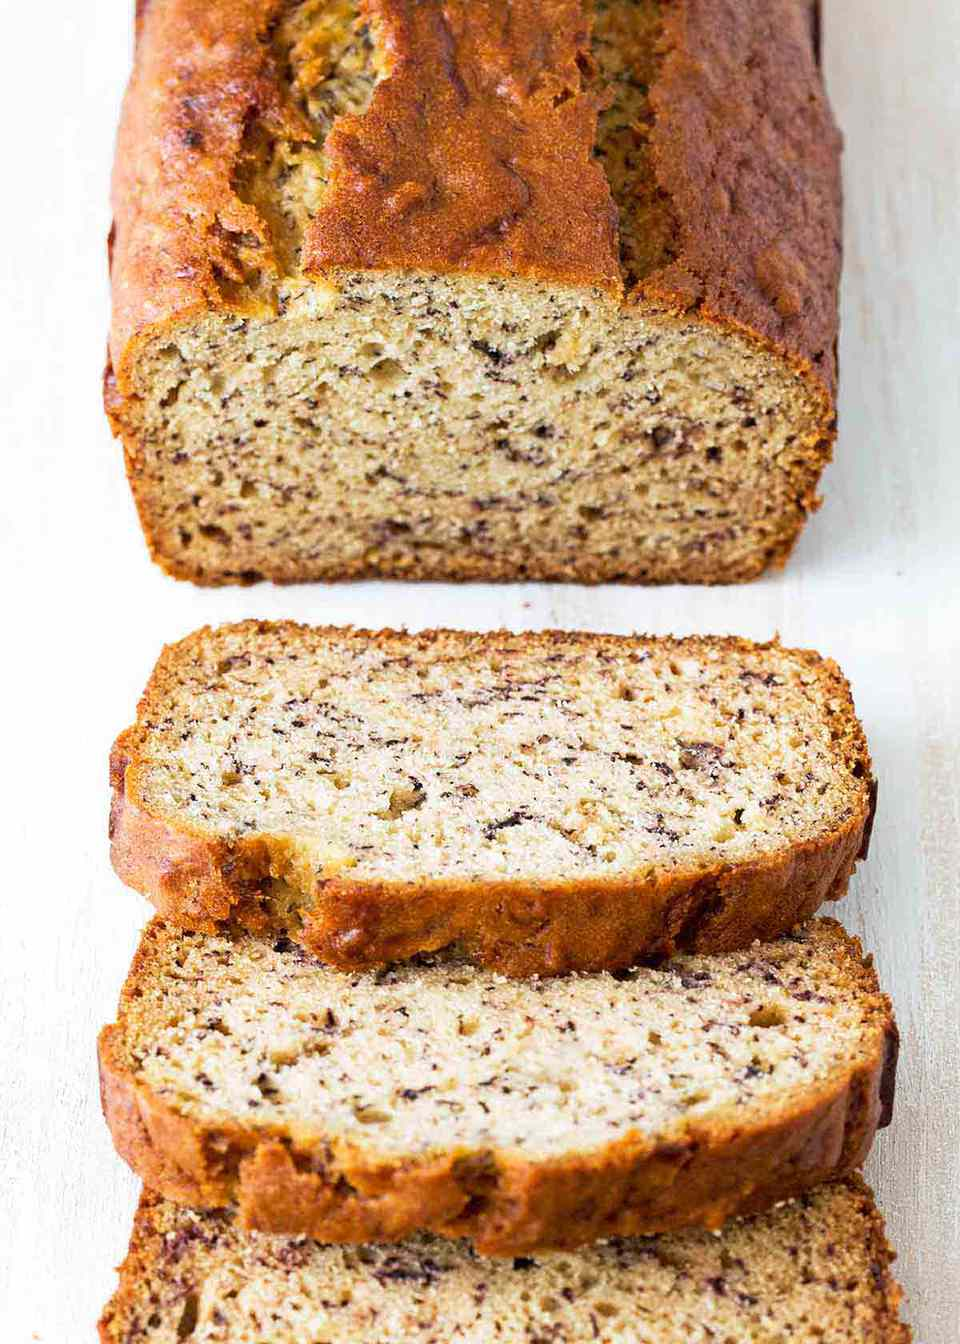 How to Thaw Banana Brea -- loaf of banana bread on white counter. Half the loaf is sliced.